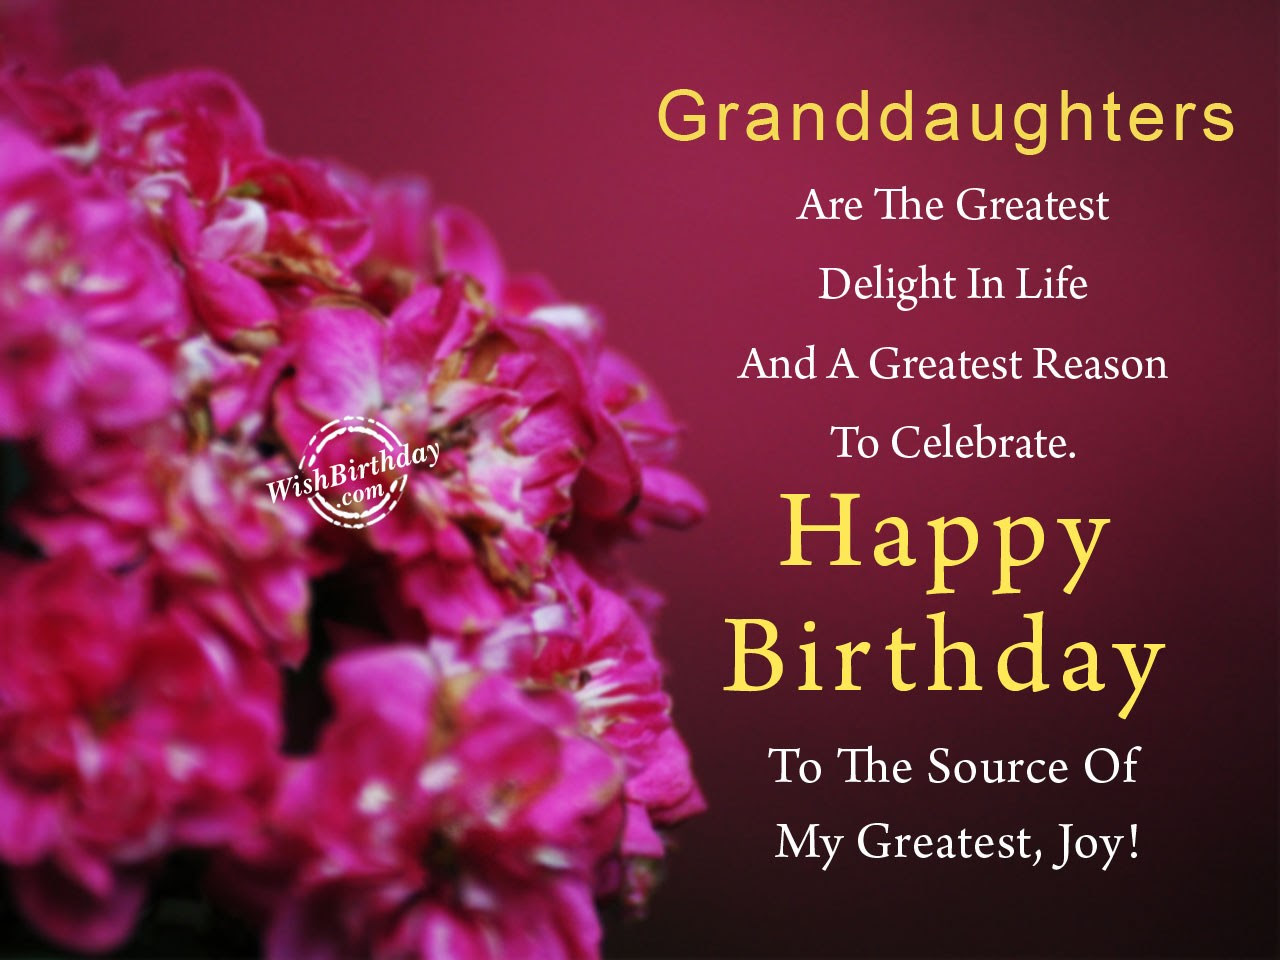 Happy Birthday Wishes To Our Granddaughter Birthday Wishes For